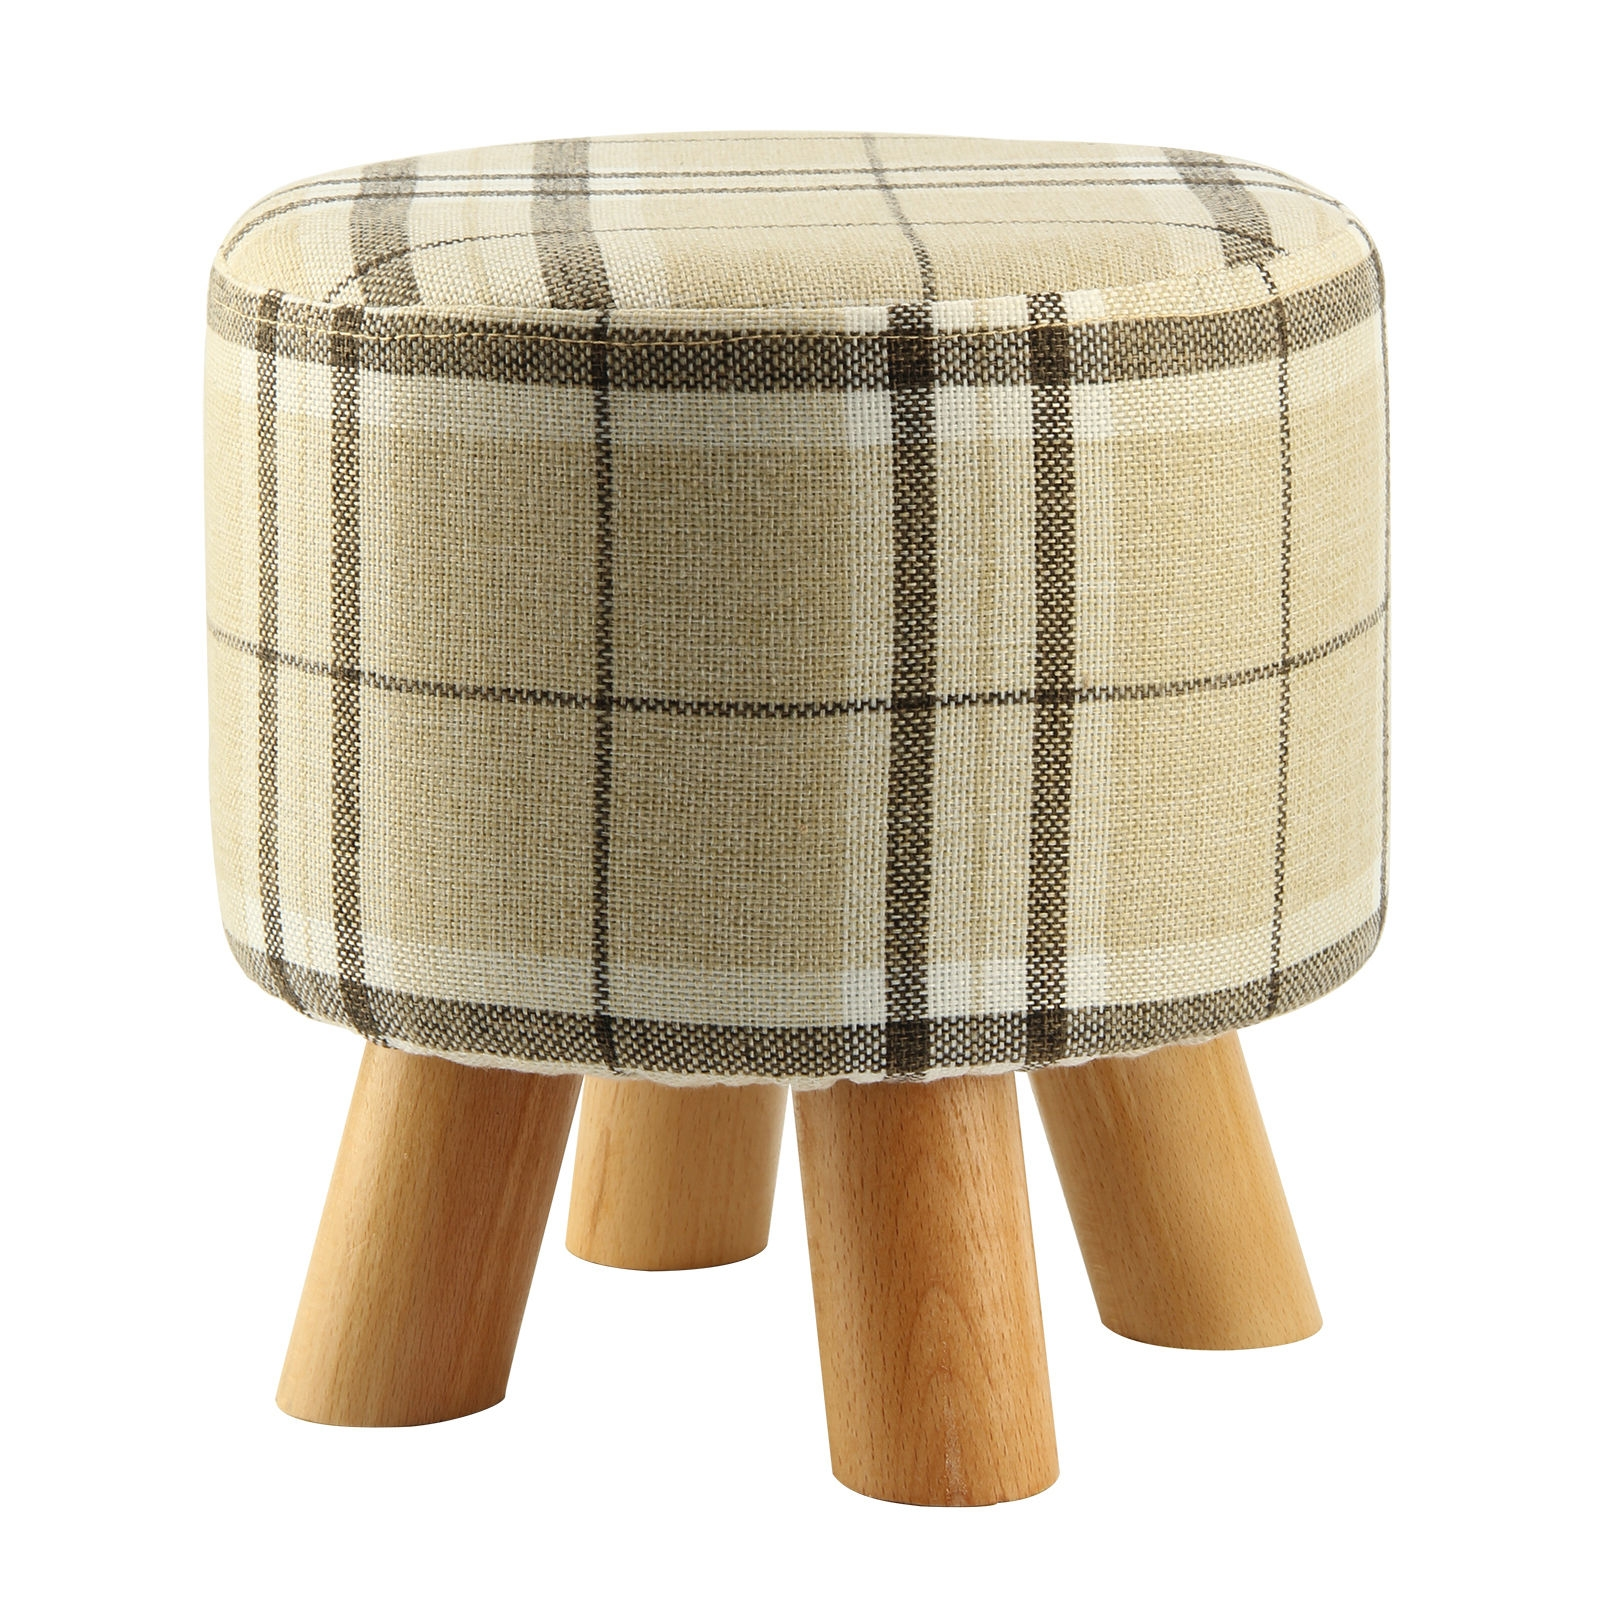 Online Get Cheap Round Footstool Aliexpress Alibaba Group Pertaining To Cheap Footstools And Pouffes (View 9 of 15)